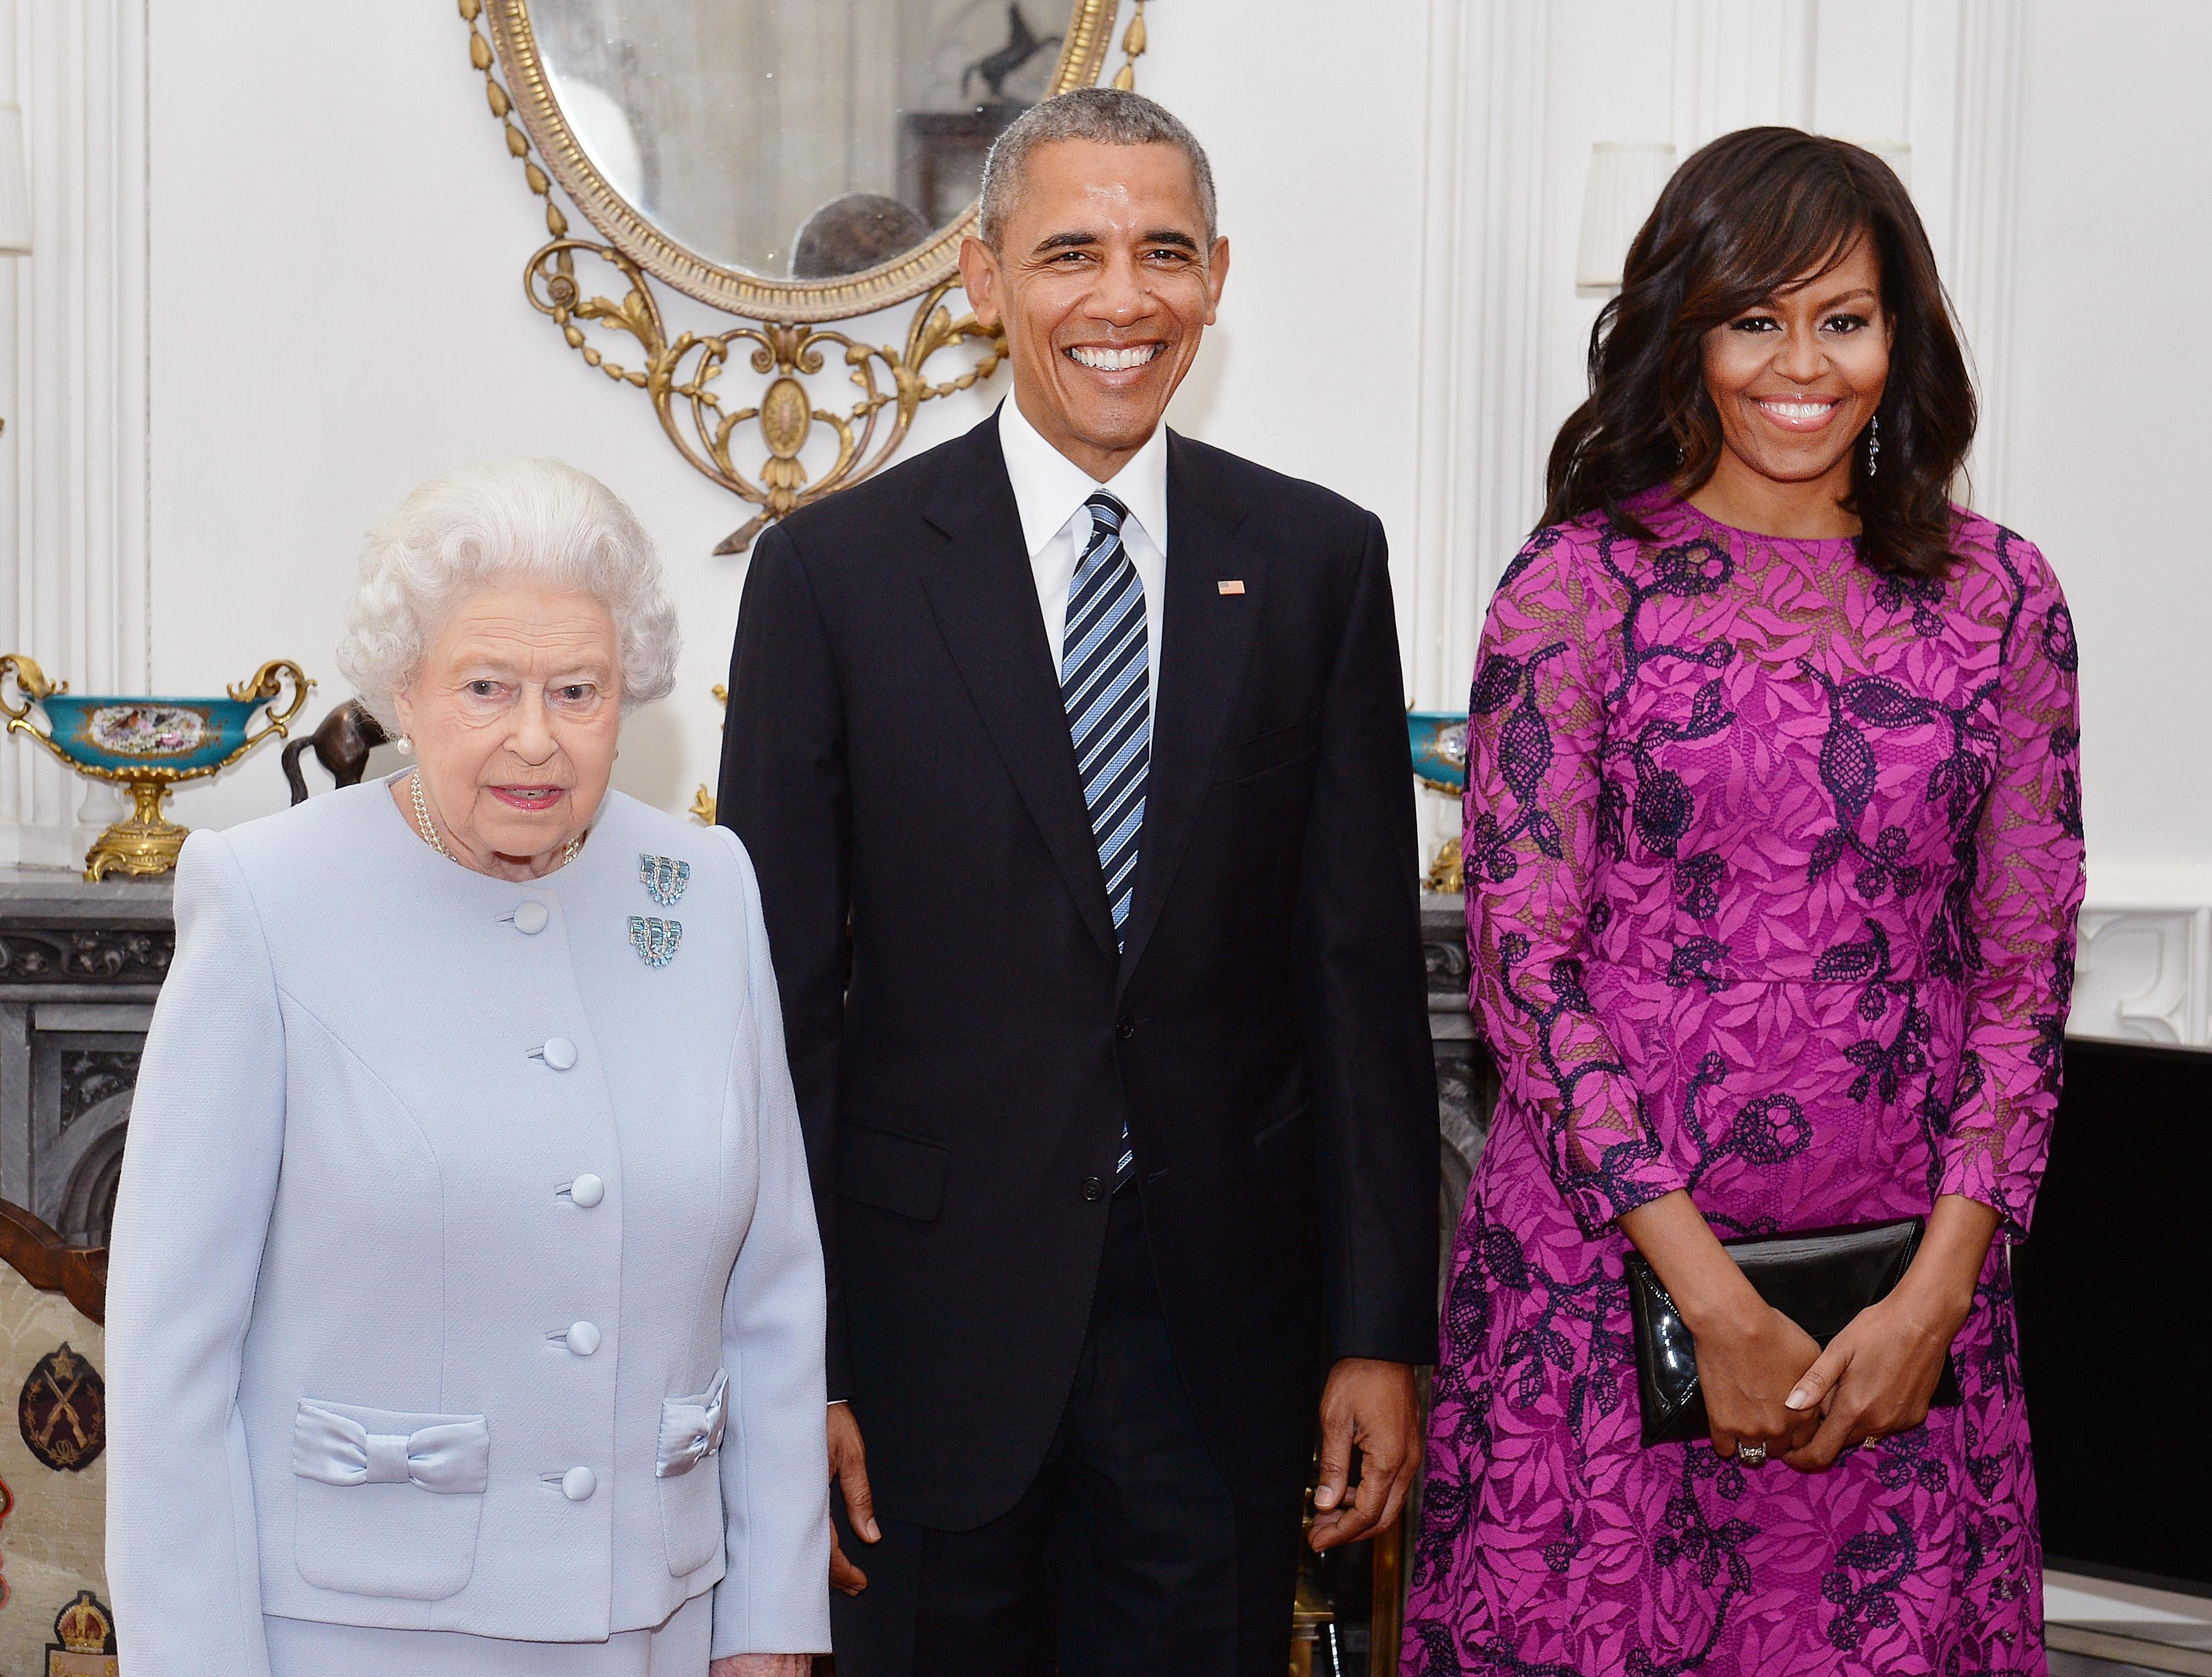 Royal Family Wants To Be 'Treated Normally,' Says Michelle Obama